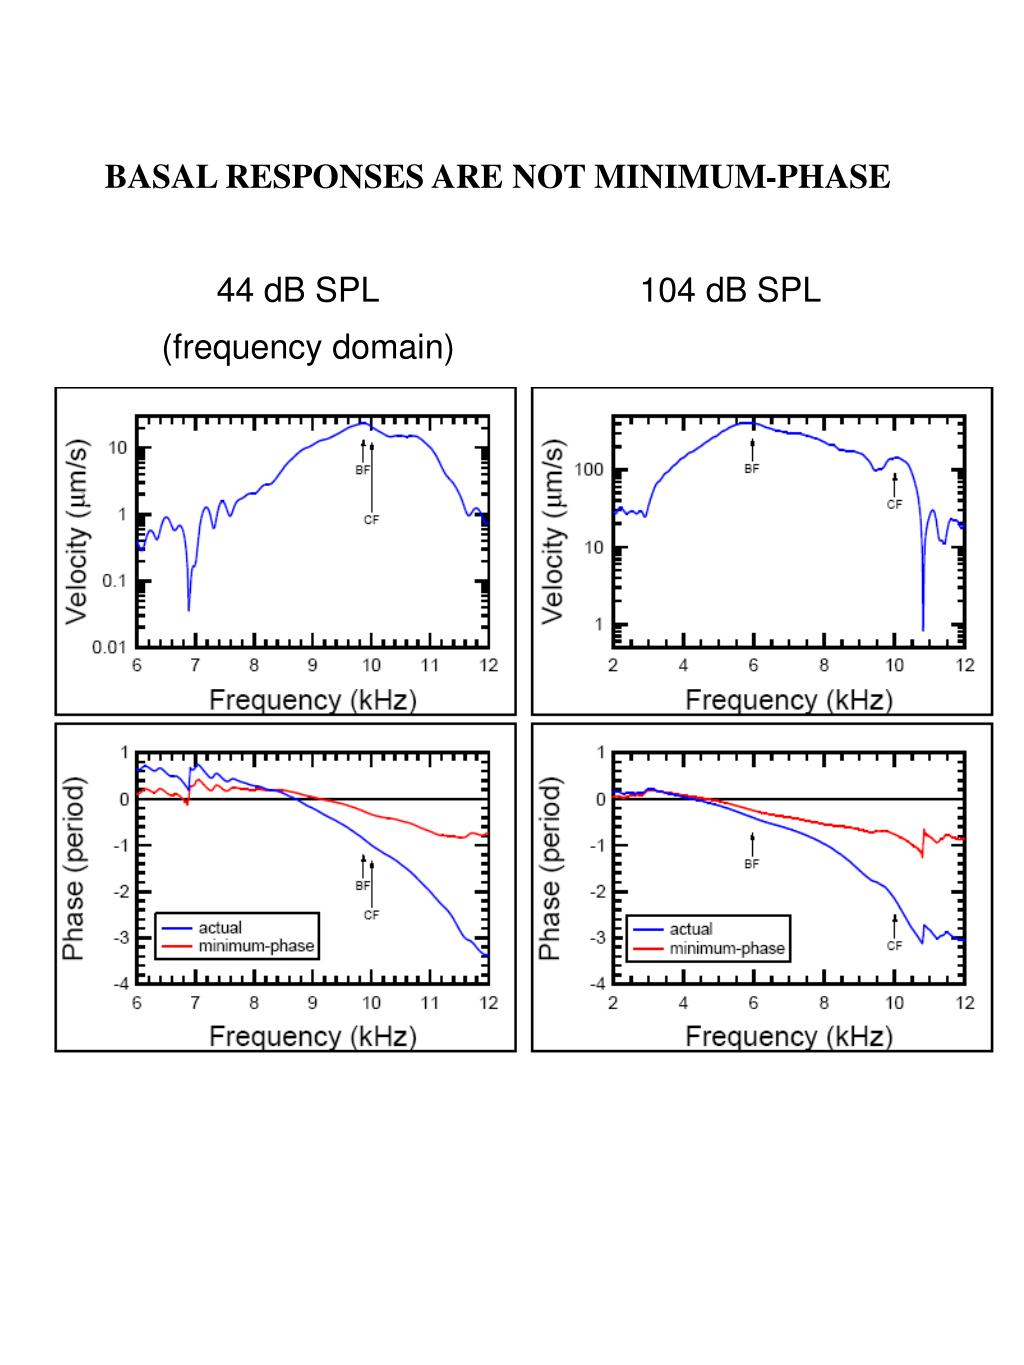 BASAL RESPONSES ARE NOT MINIMUM-PHASE